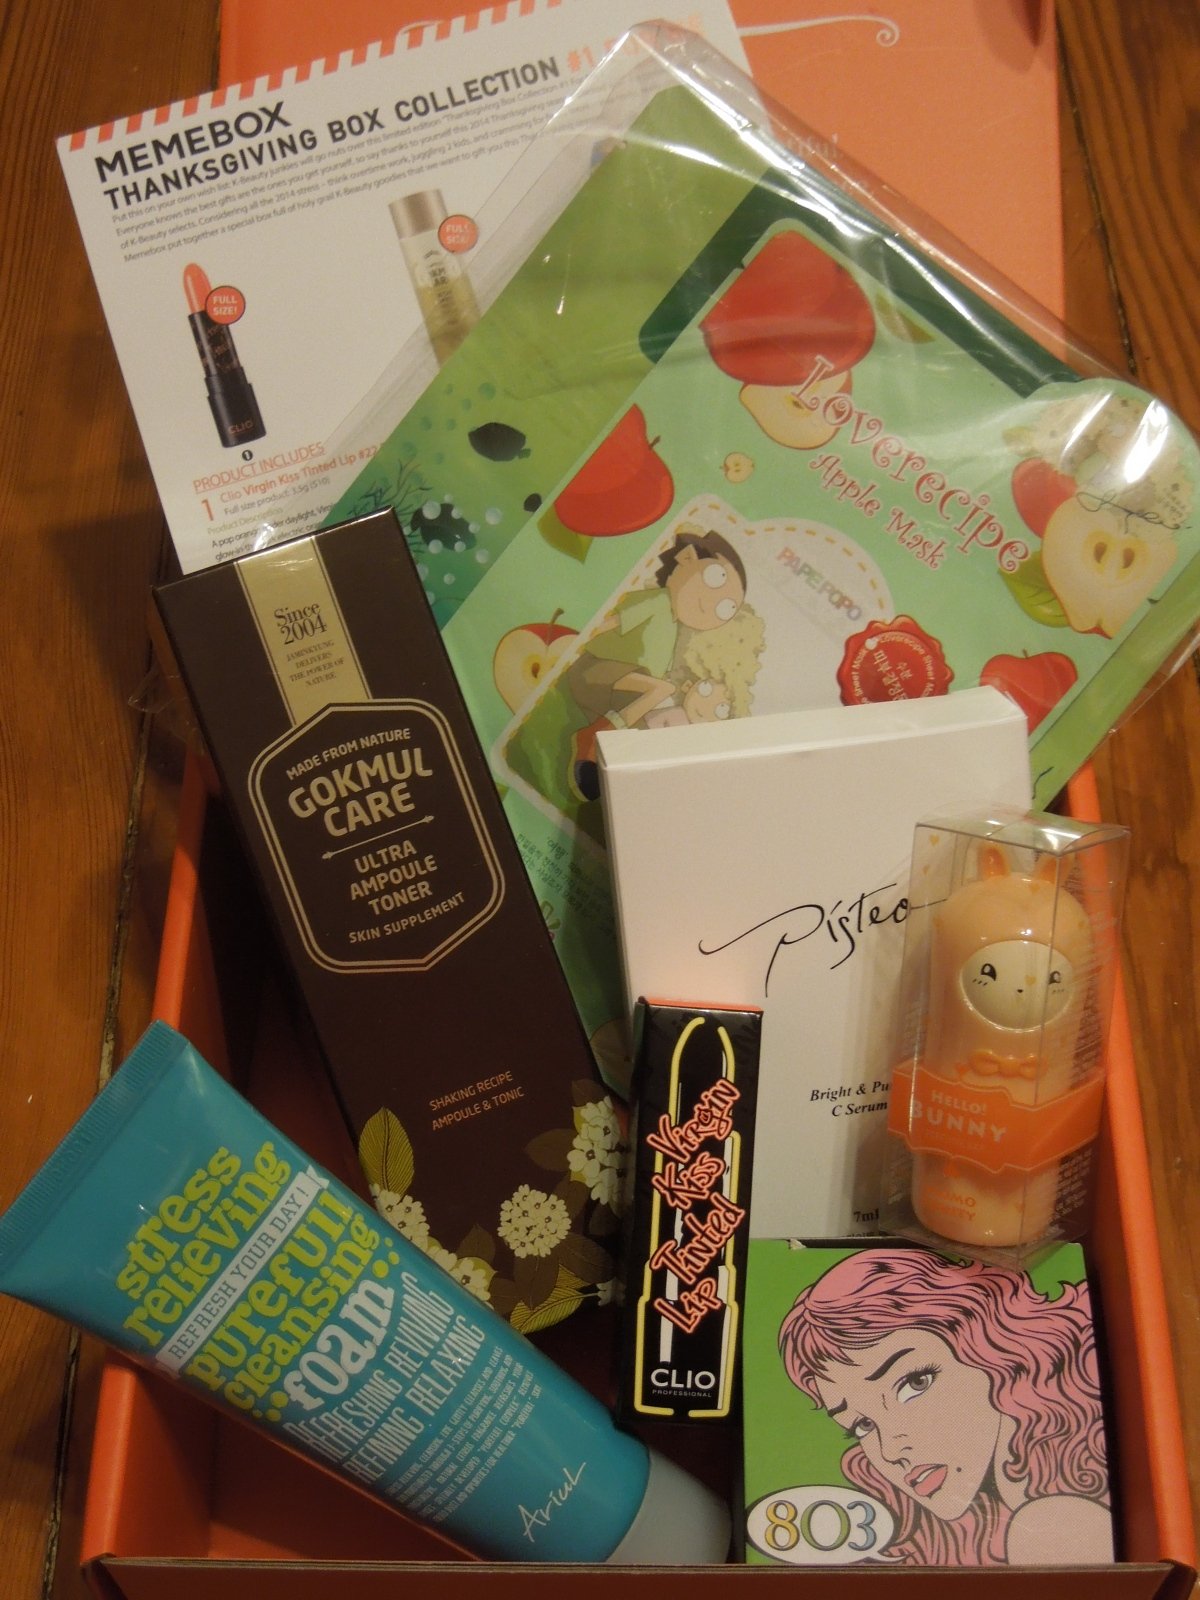 Memebox – Thanksgiving Box Collection #1 For Me